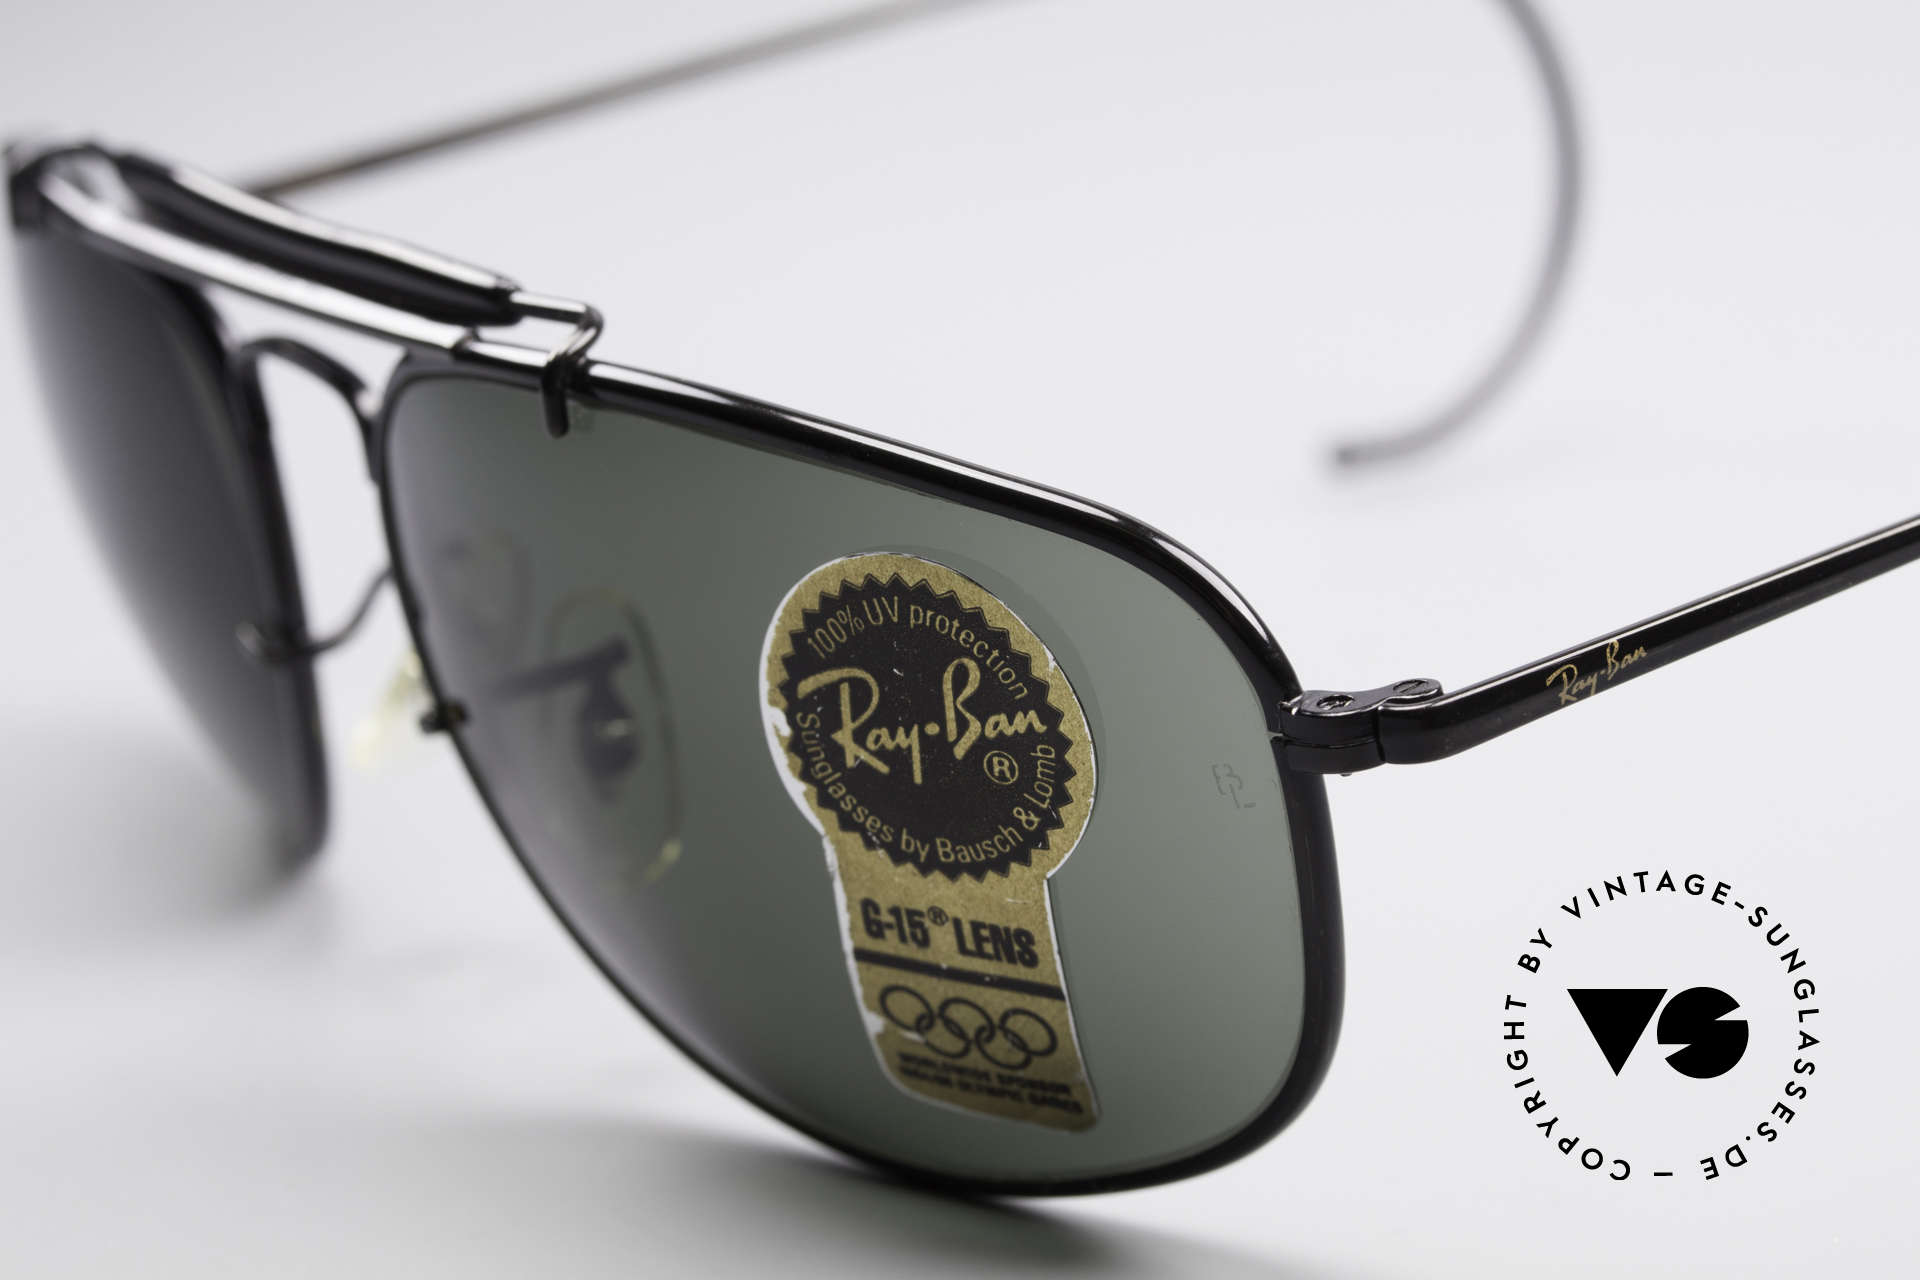 Ray Ban Sport Metal 1992 Olympic Series B&L USA, unworn; like all our vintage USA Ray Ban sports glasses, Made for Men